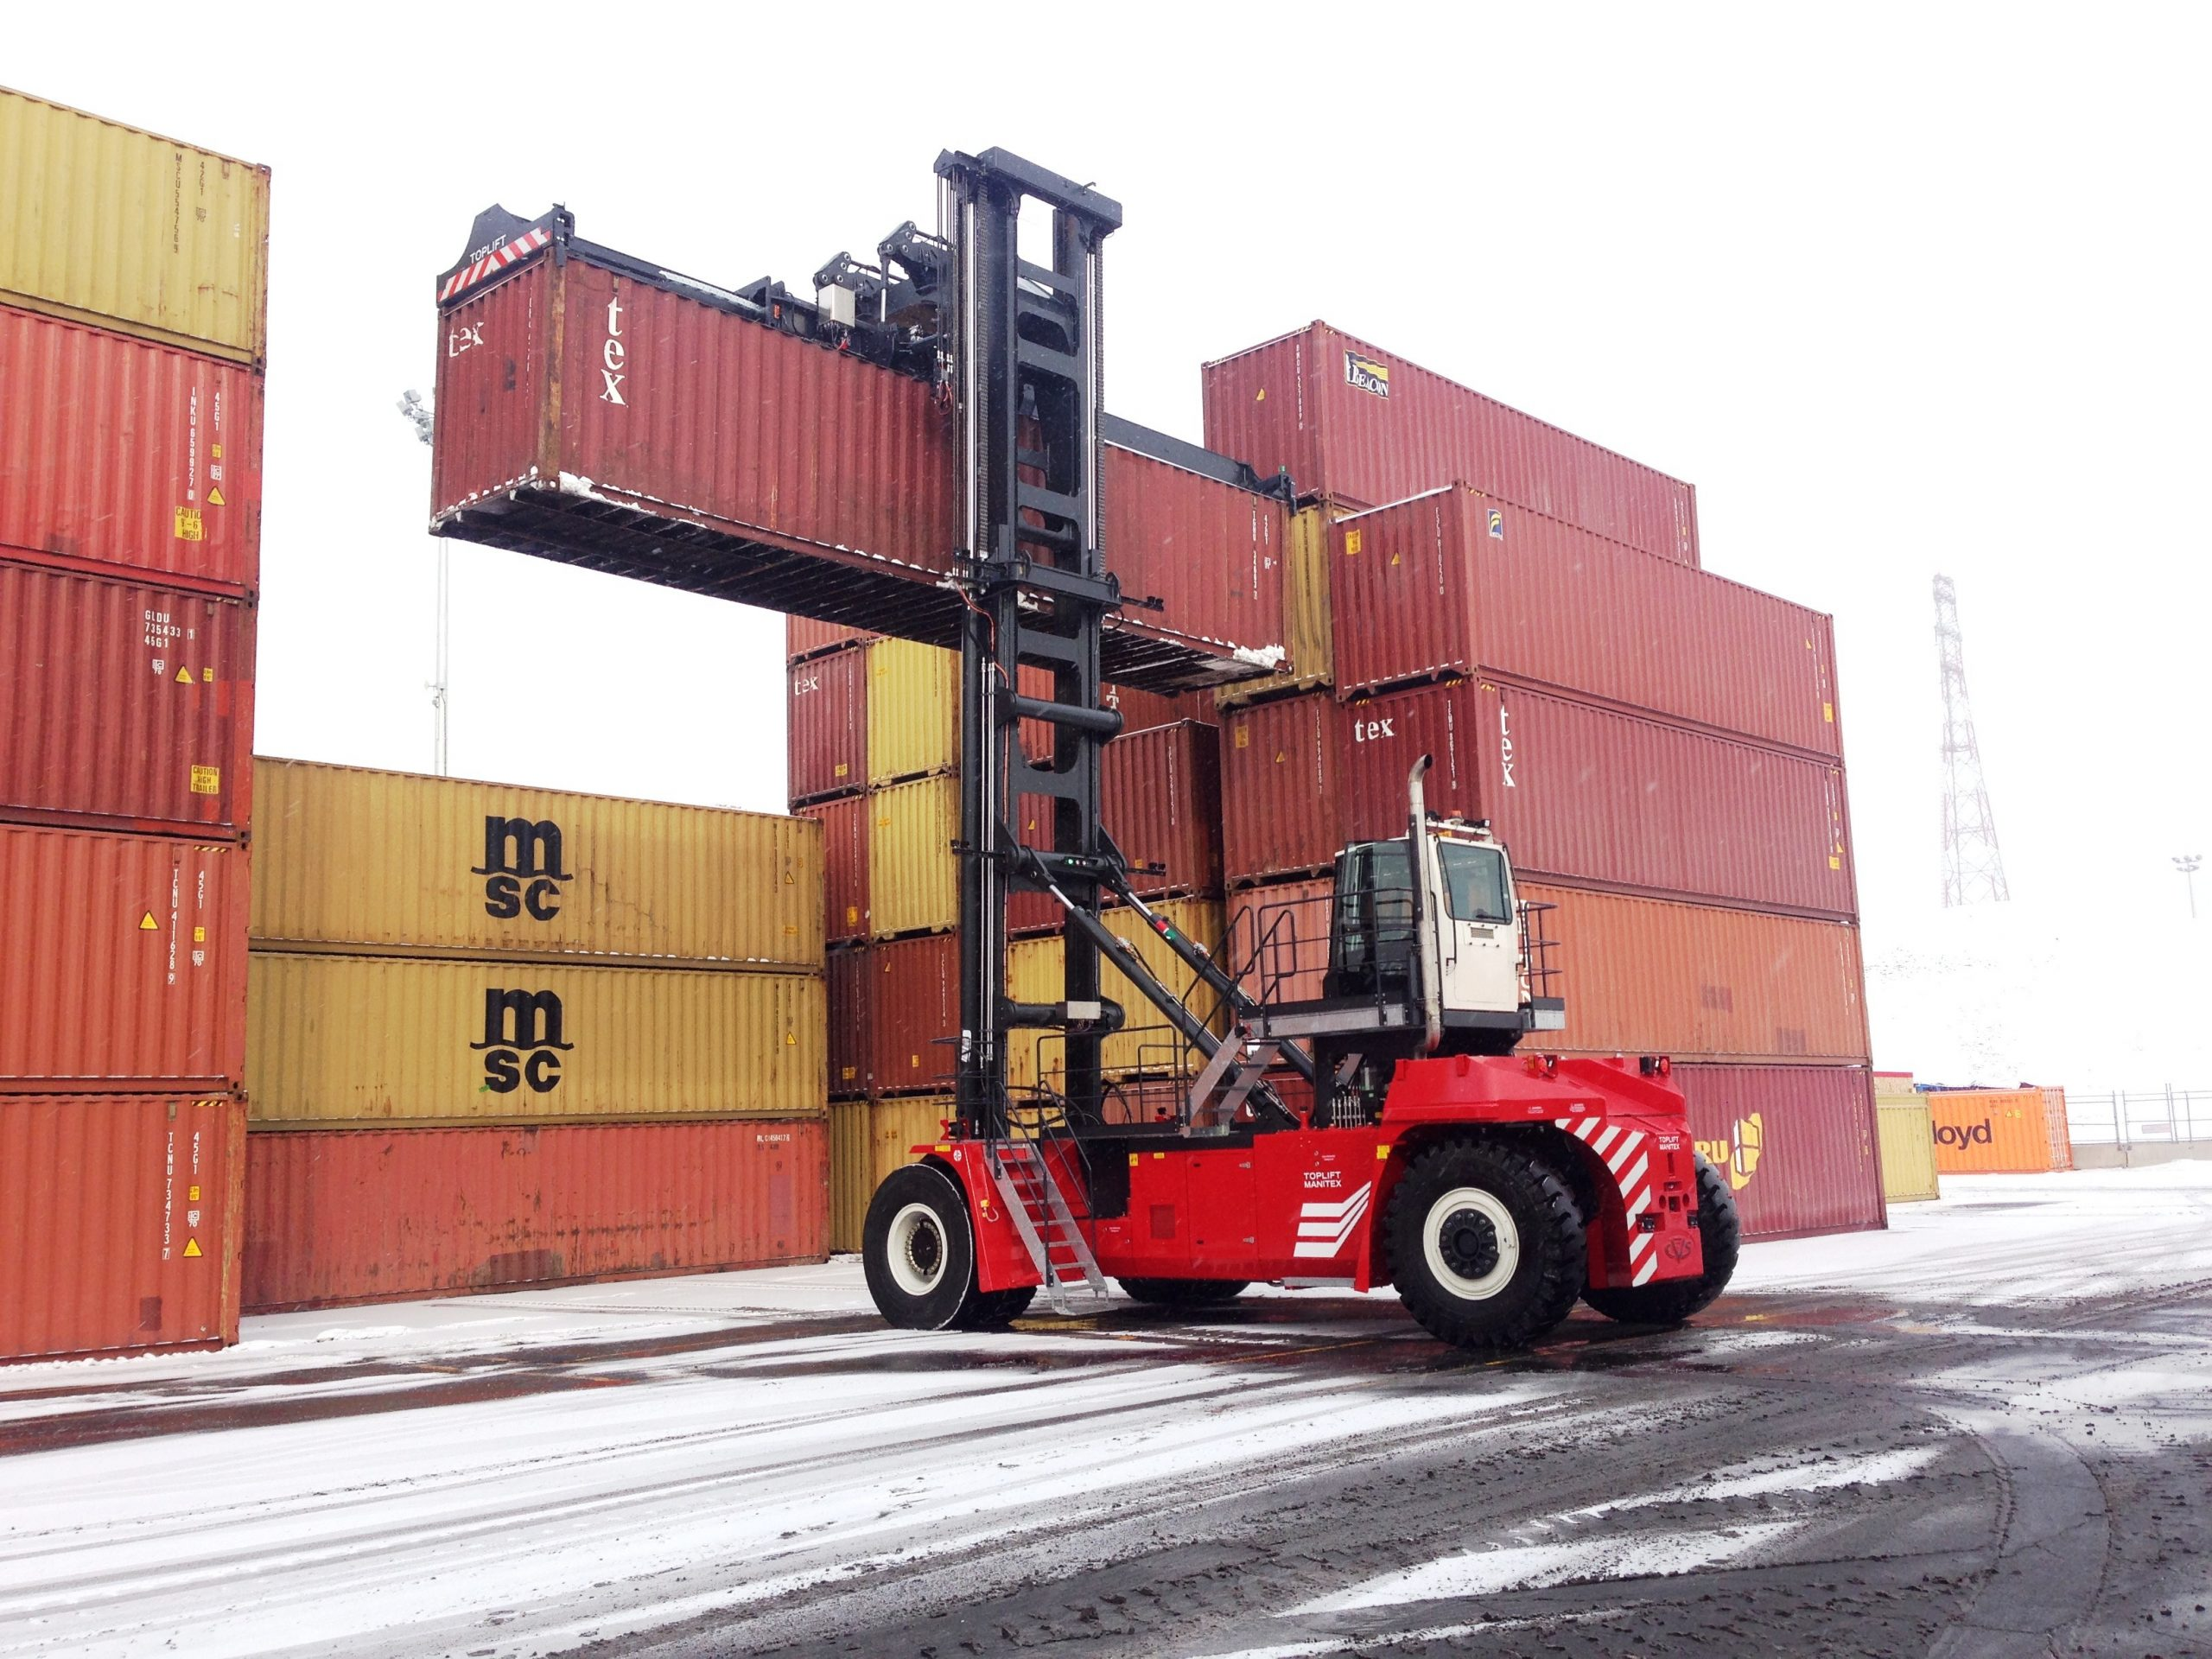 5.LCH МАНИПУЛАТОР ЗА КОНТЕЙНЕРИ PROINSTALL Loaded Container Handler